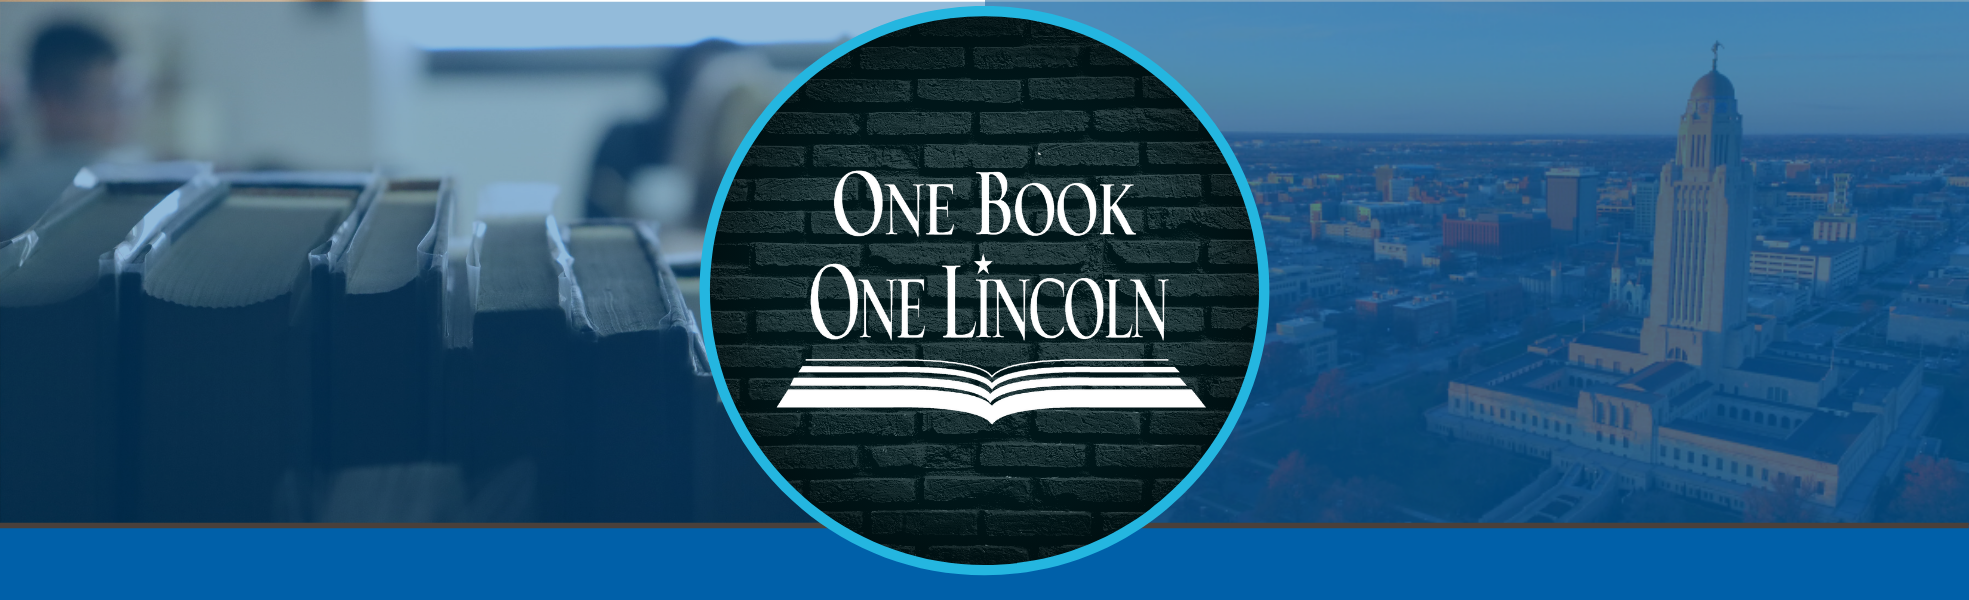 Lincoln-Skyline-Books-One-Book-One-Lincoln